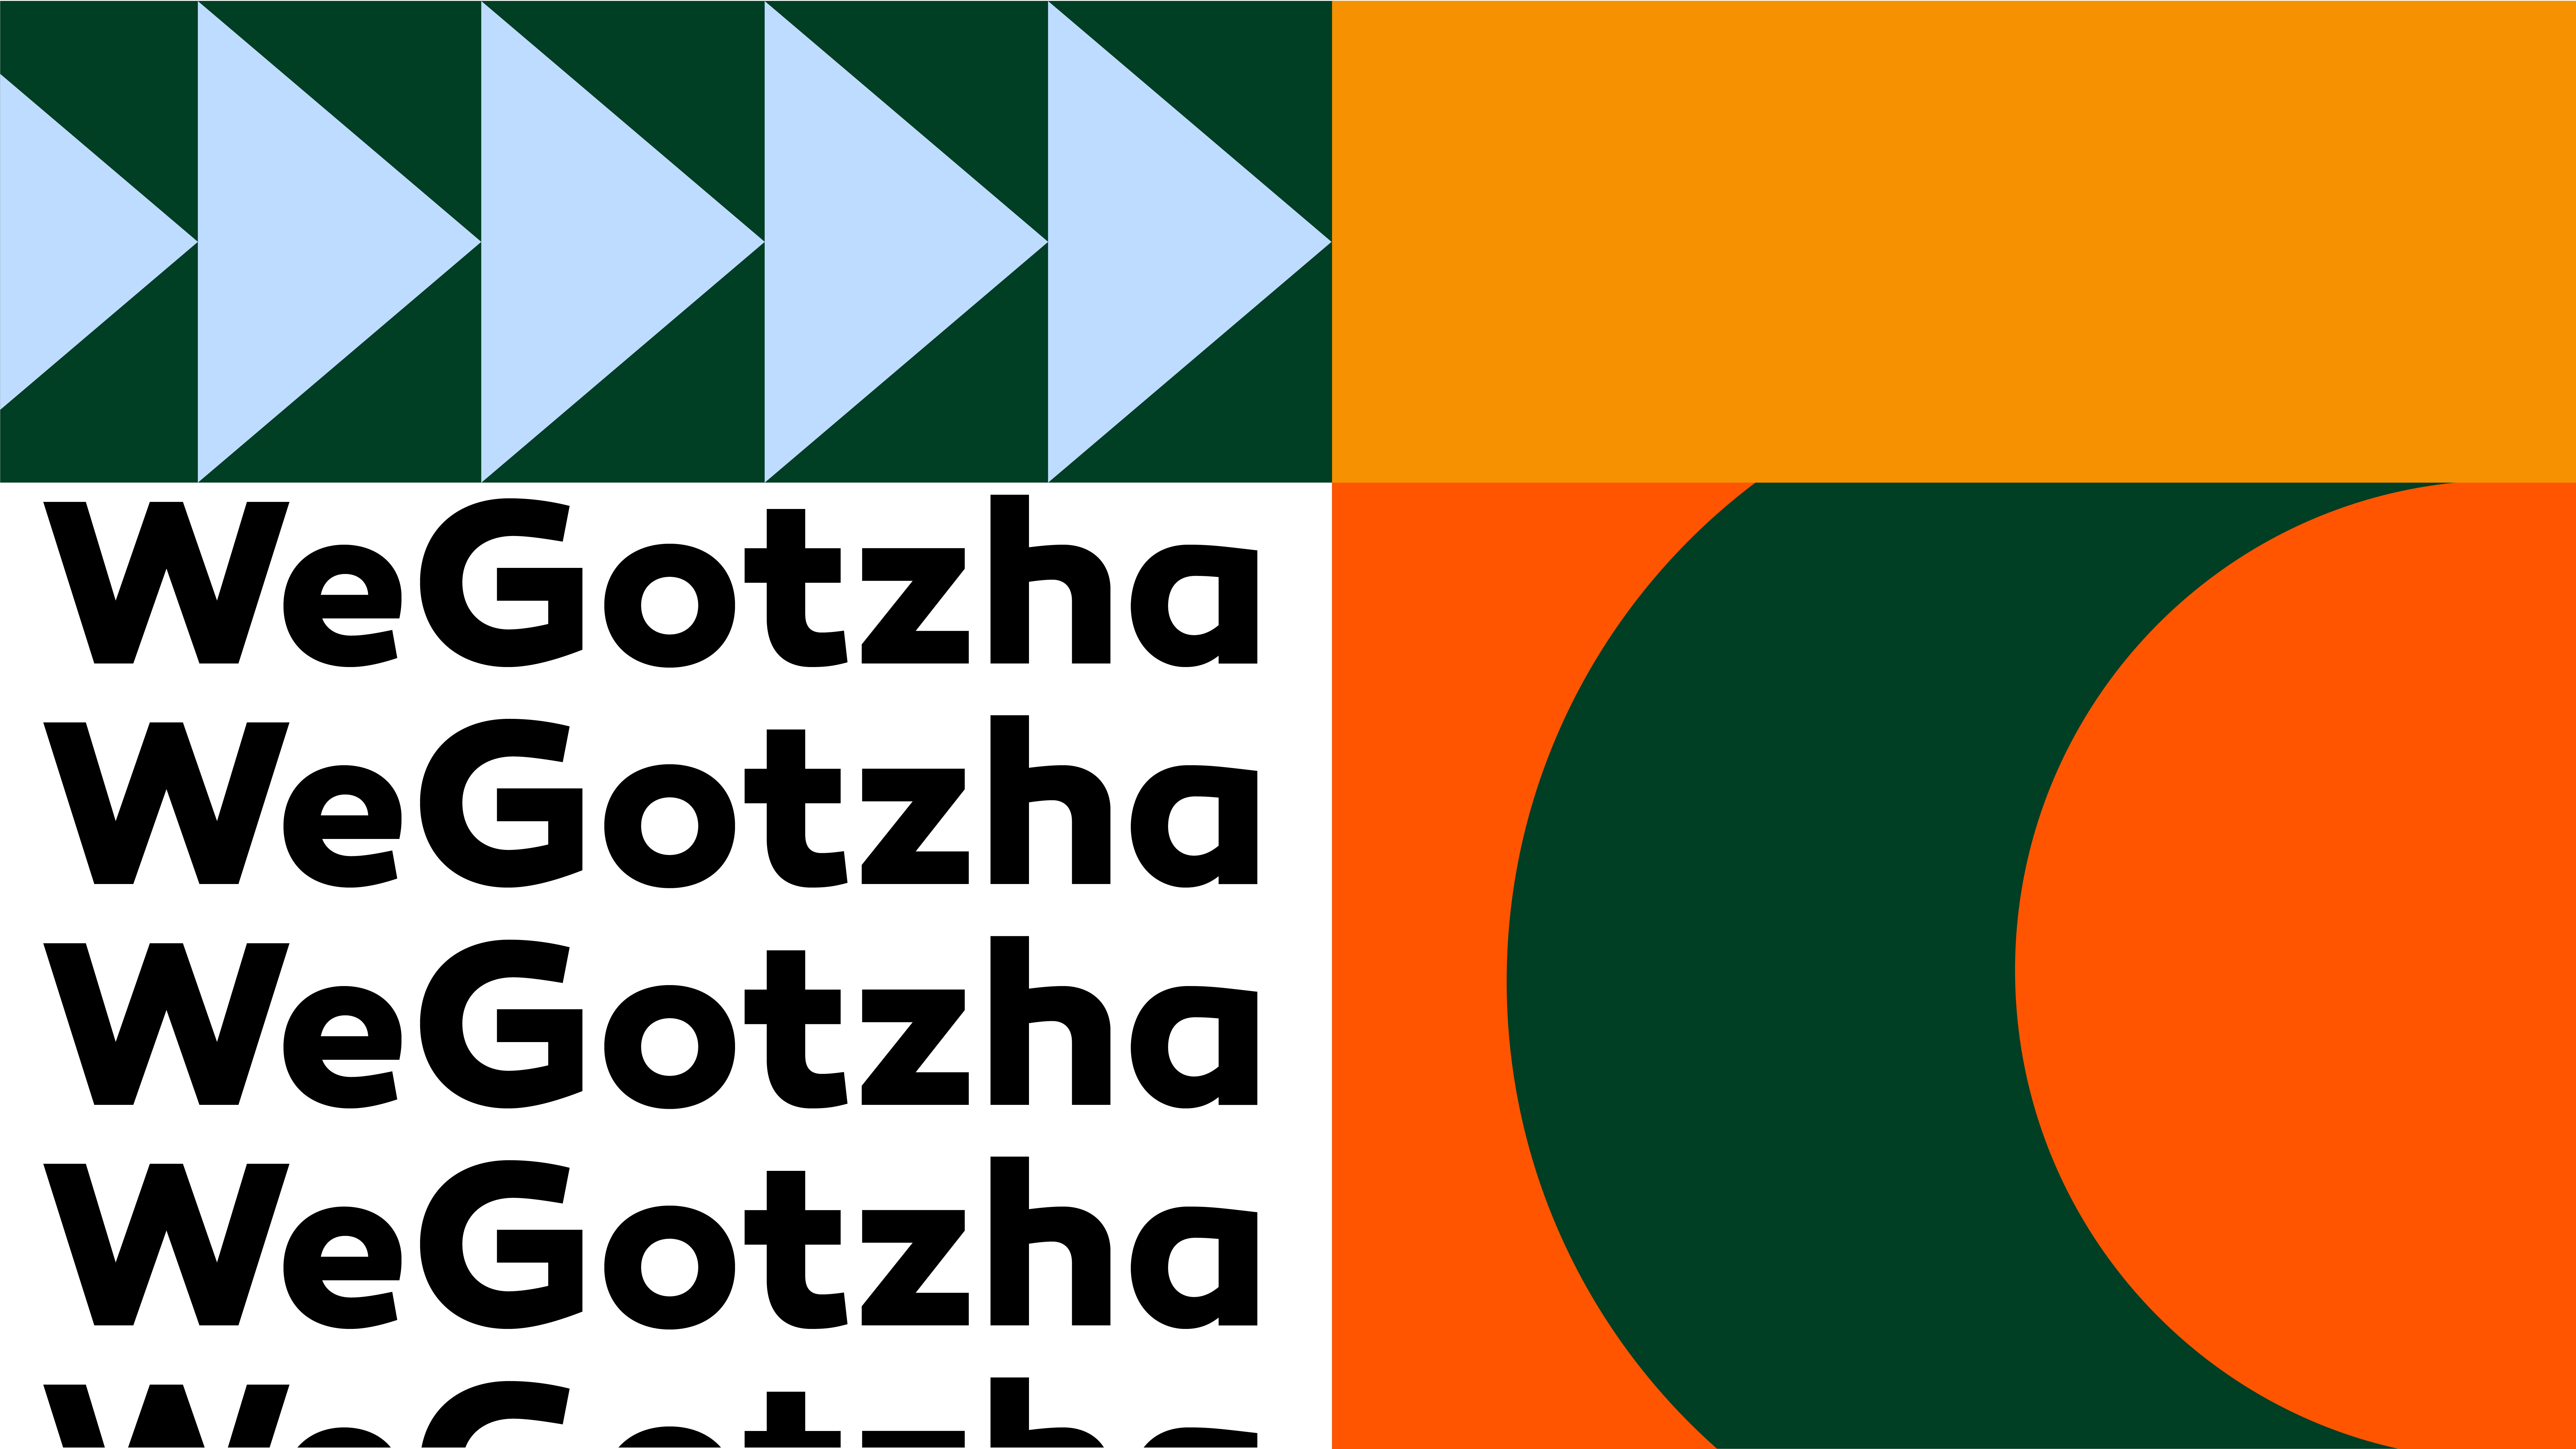 Dutch Design Agency. Case of Gotzha, connecting people and culture